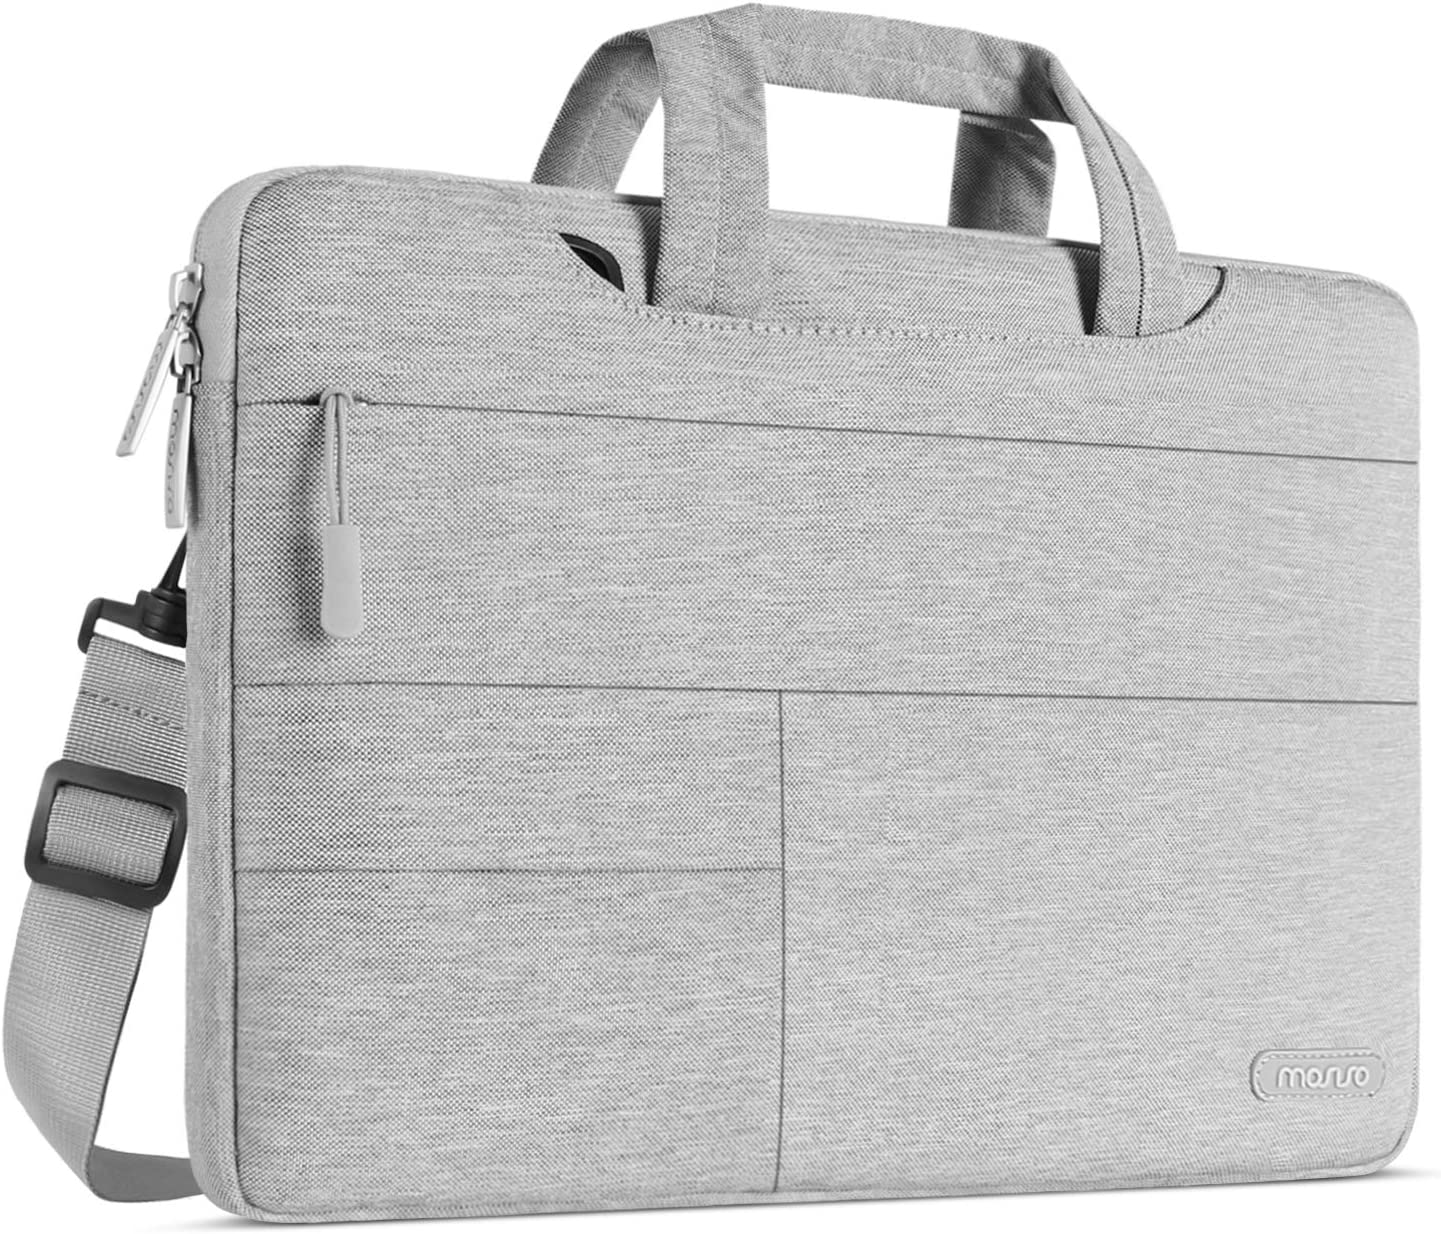 MOSISO Laptop Shoulder Bag Compatible with MacBook Pro 16 inch, 15 15.4 15.6 inch Dell Lenovo HP Asus Acer Samsung Sony Chromebook, Polyester Briefcase Sleeve with Front Storage Pockets, Gray